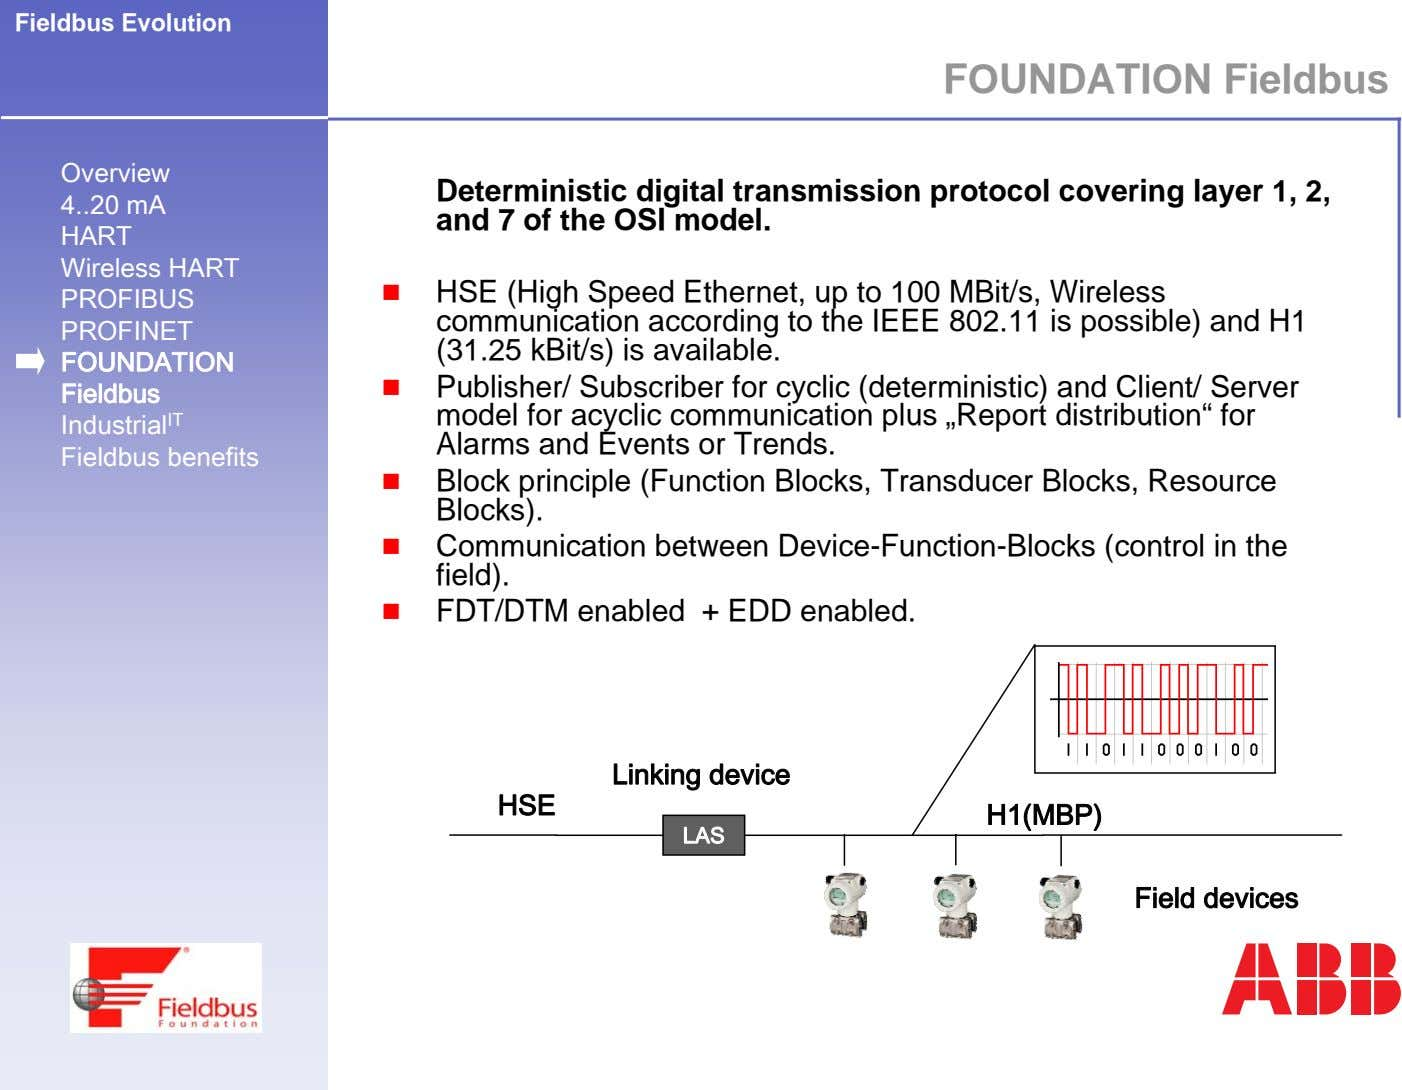 Fieldbus Evolution FOUNDATION Fieldbus Overview 4 20 mA Deterministic digital transmission protocol covering layer